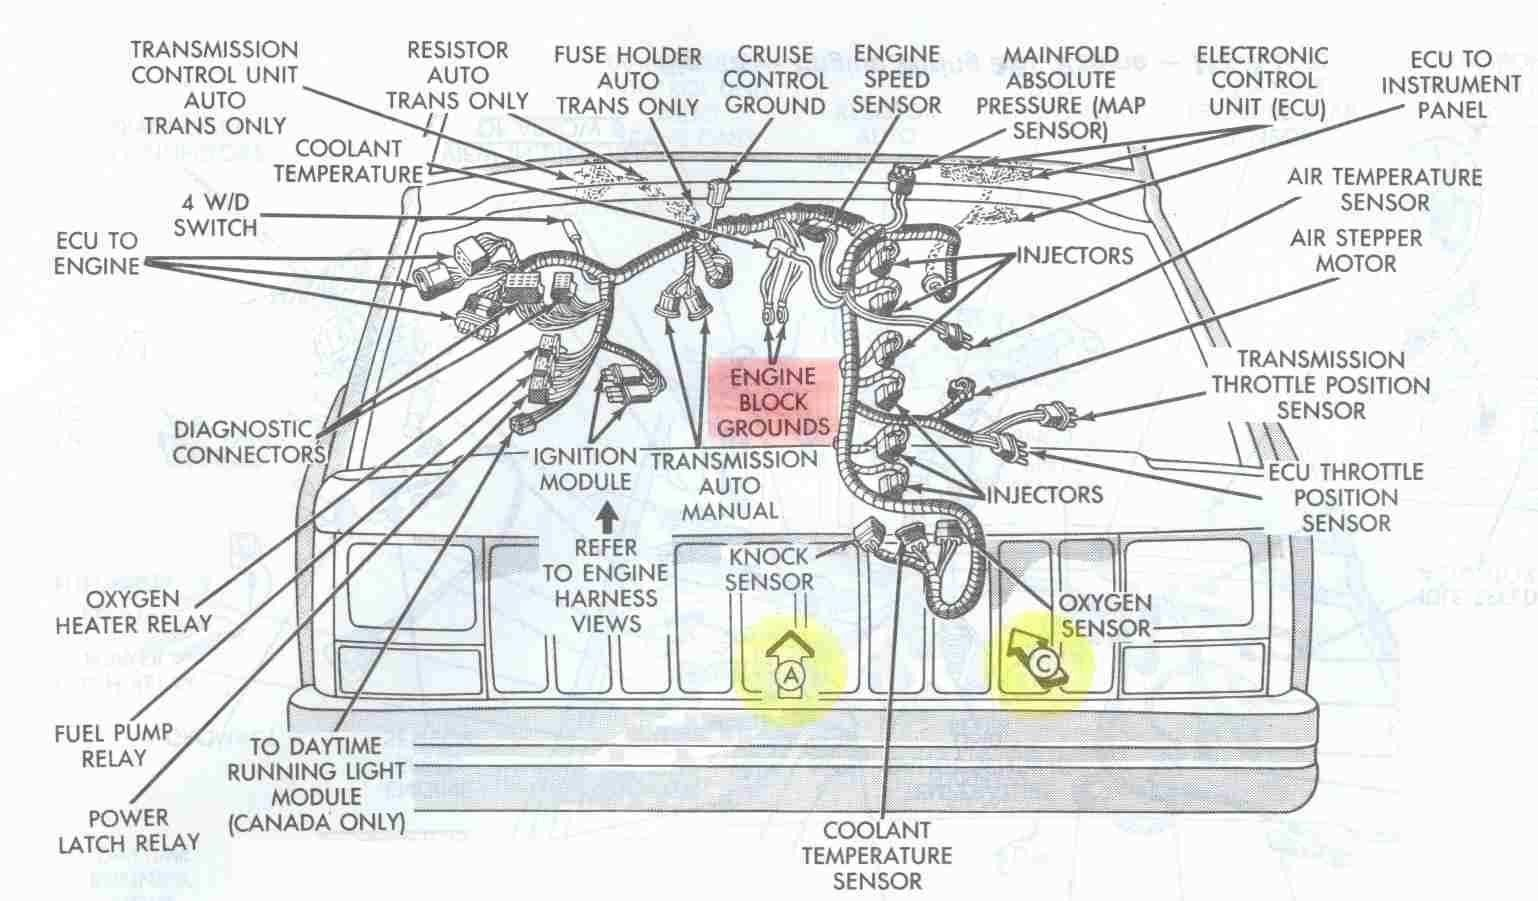 engine bay schematic showing major electrical ground points for 4.0l  regarding 1990 jeep wrangler wiring diagram | jeep xj, jeep cherokee, 2001  jeep cherokee  pinterest